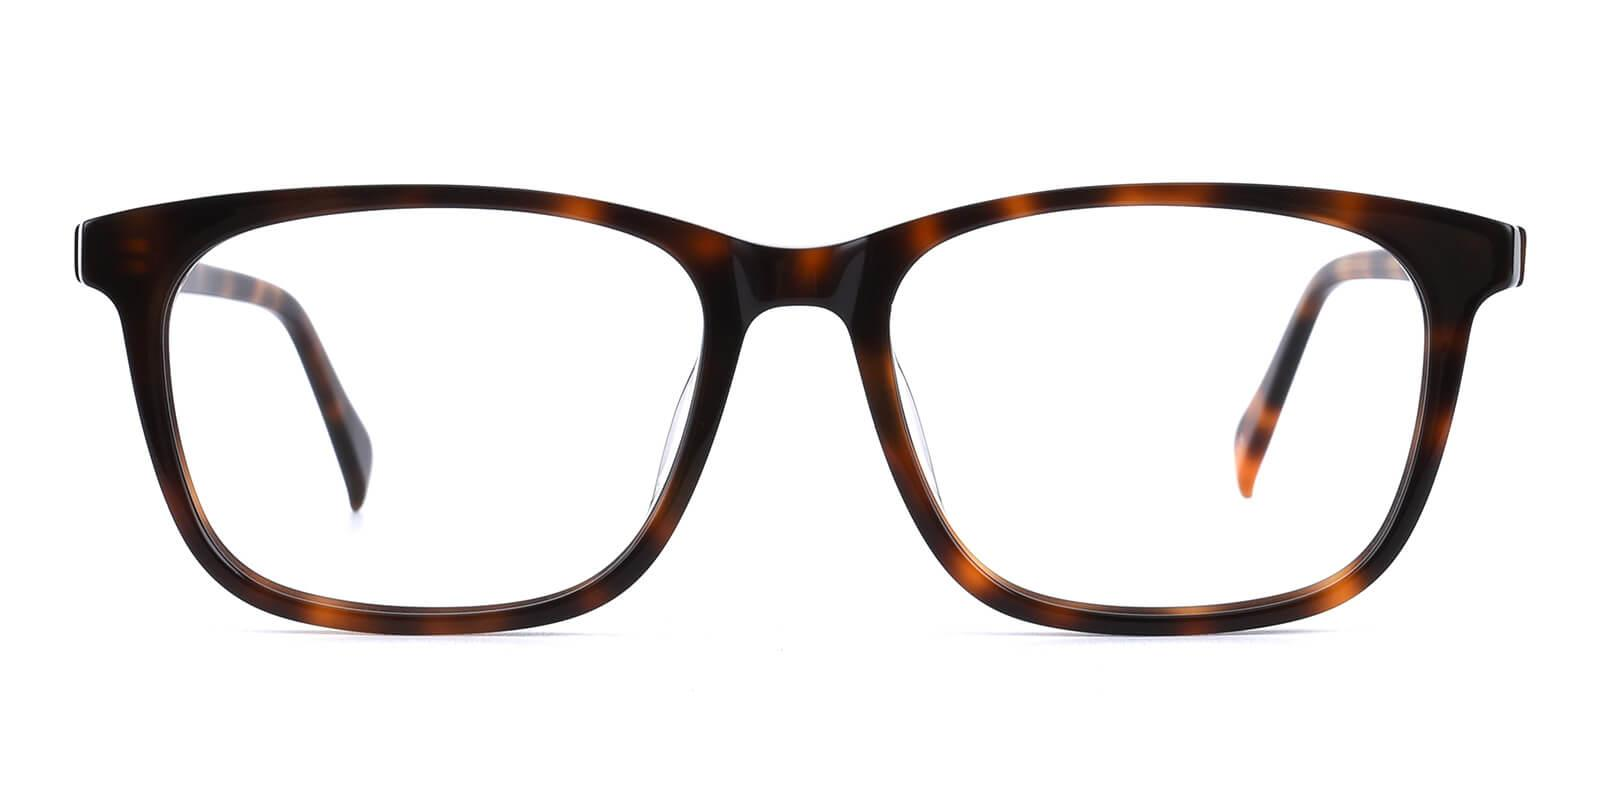 Bugger-Tortoise-Square-Acetate-Eyeglasses-additional2